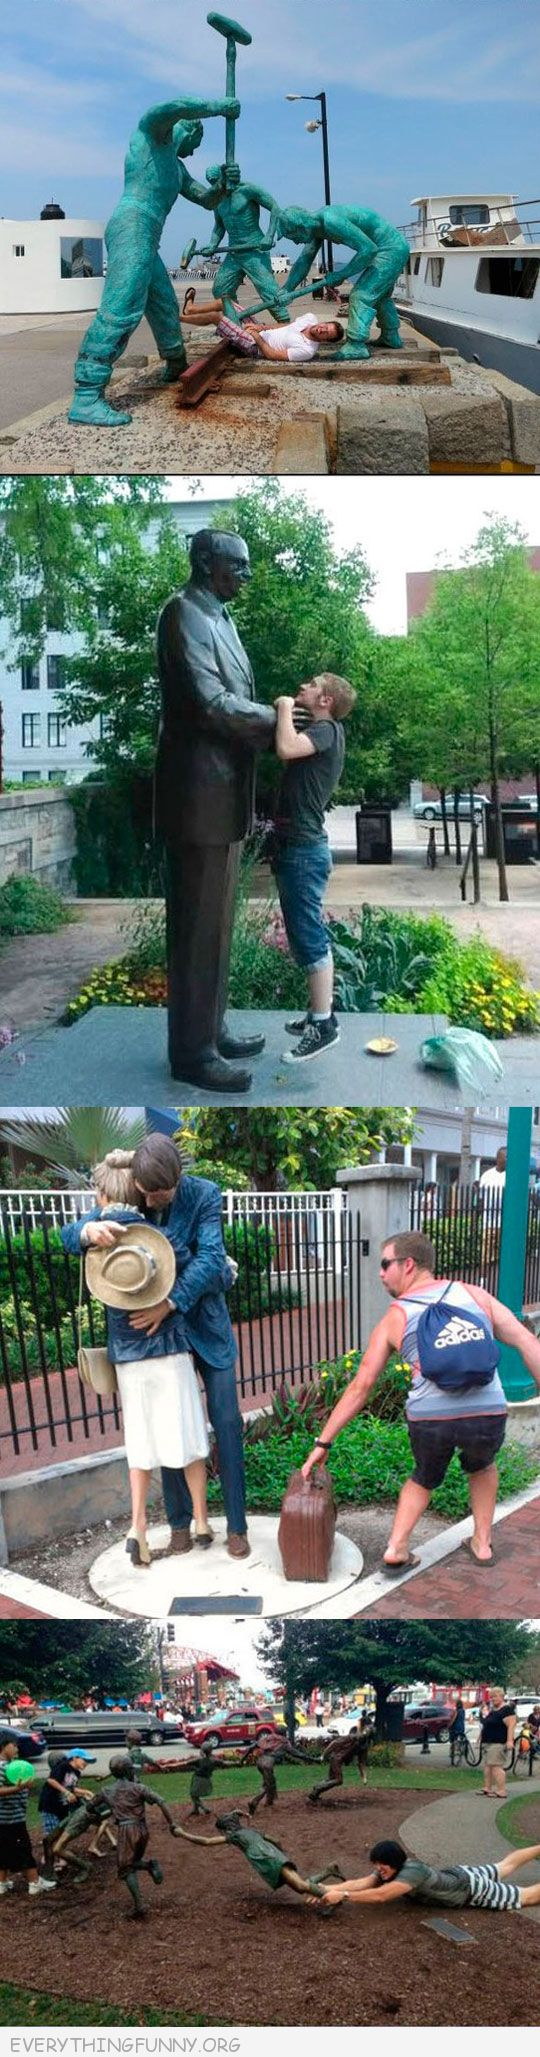 funny having fun with statues